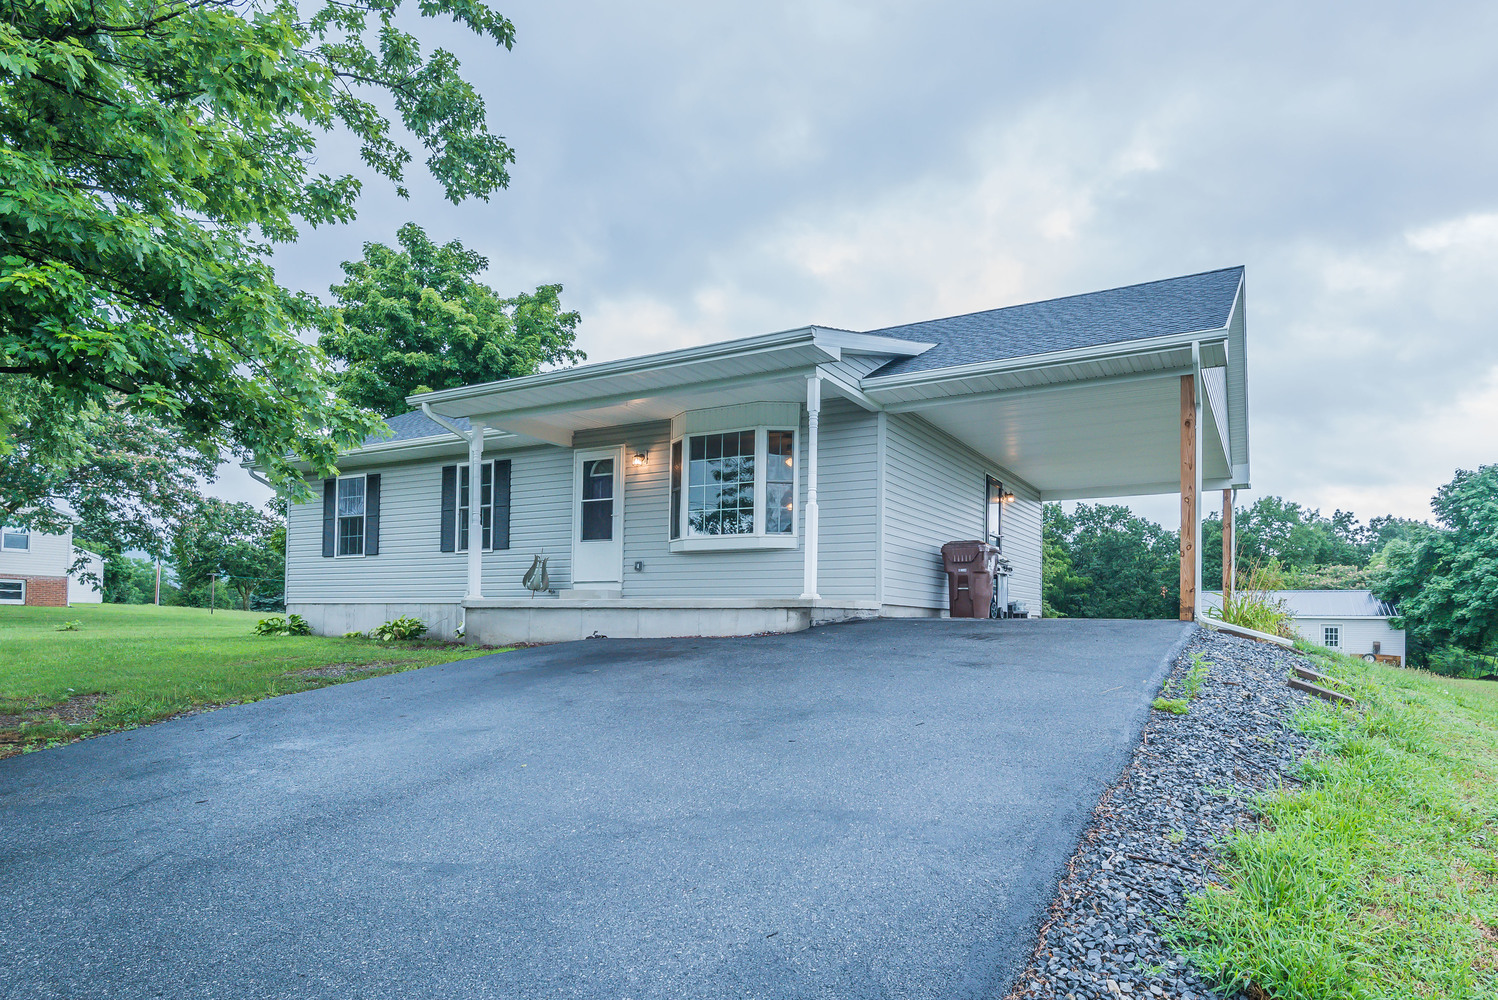 515 Shed Road - Newville PA 17241